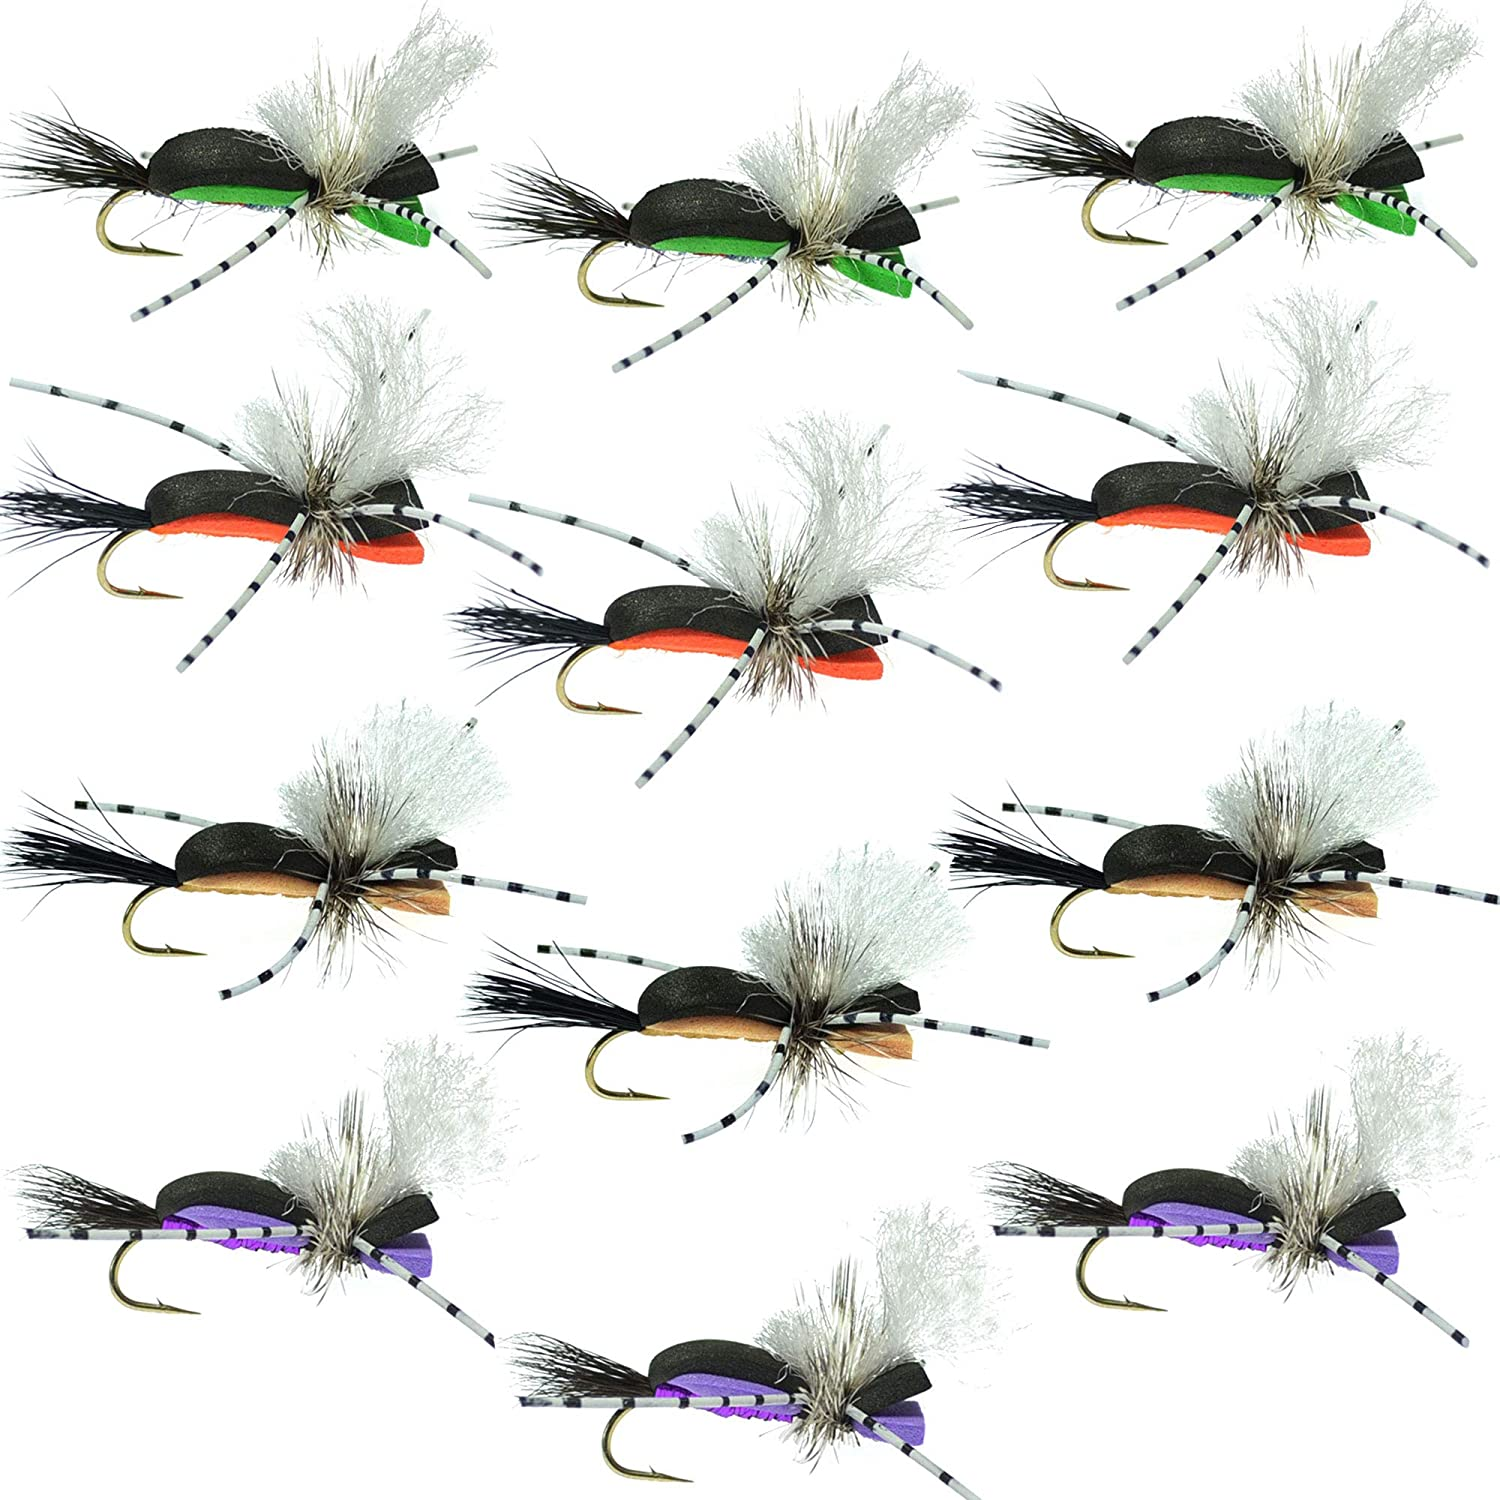 The Fly Fishing Lowest price challenge Place Hippie Stomper Collection Discount is also underway Bo 4 Foam Colors